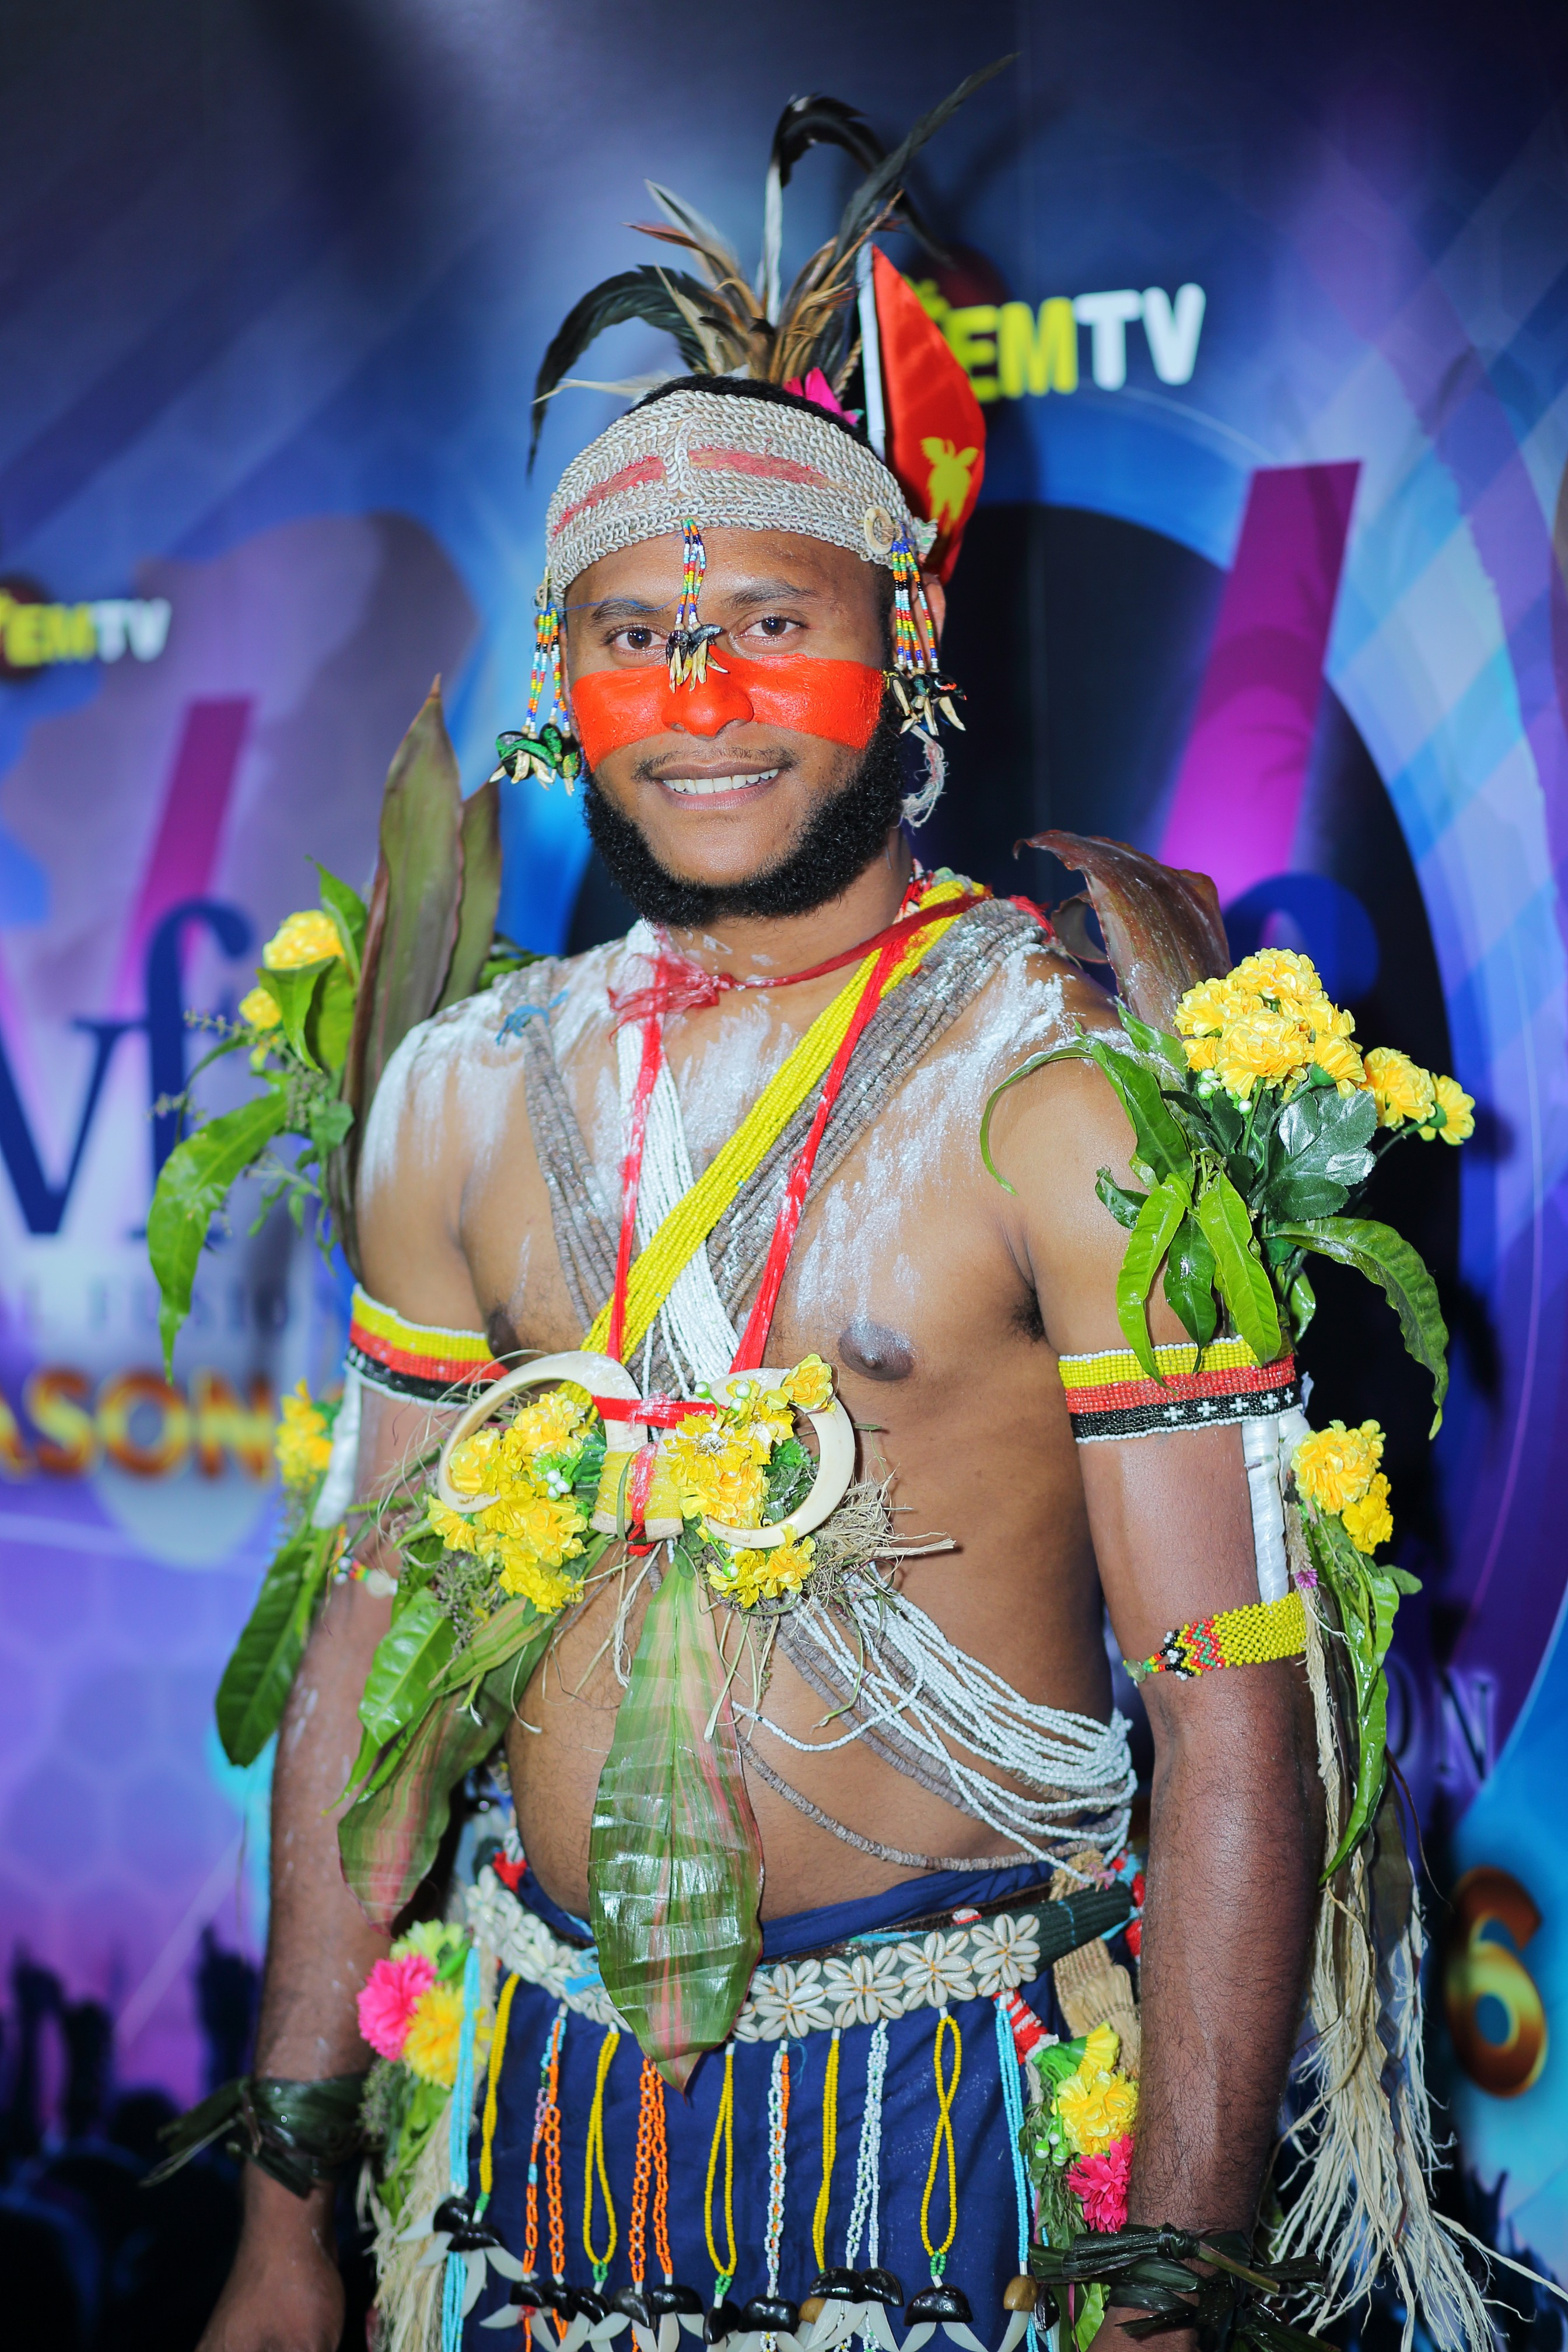 One of the two contestants from our Mt Hagen audition is 28 year old Joseph Baital. Joseph lives in Goroka and had to traveled to Mt Hagen to audition. He is from Siassi in the Morobe province and enjoys listening to Ballet music. Joseph's favourite artist is fellow Morobean and Jokema's front man Honlly Issac.